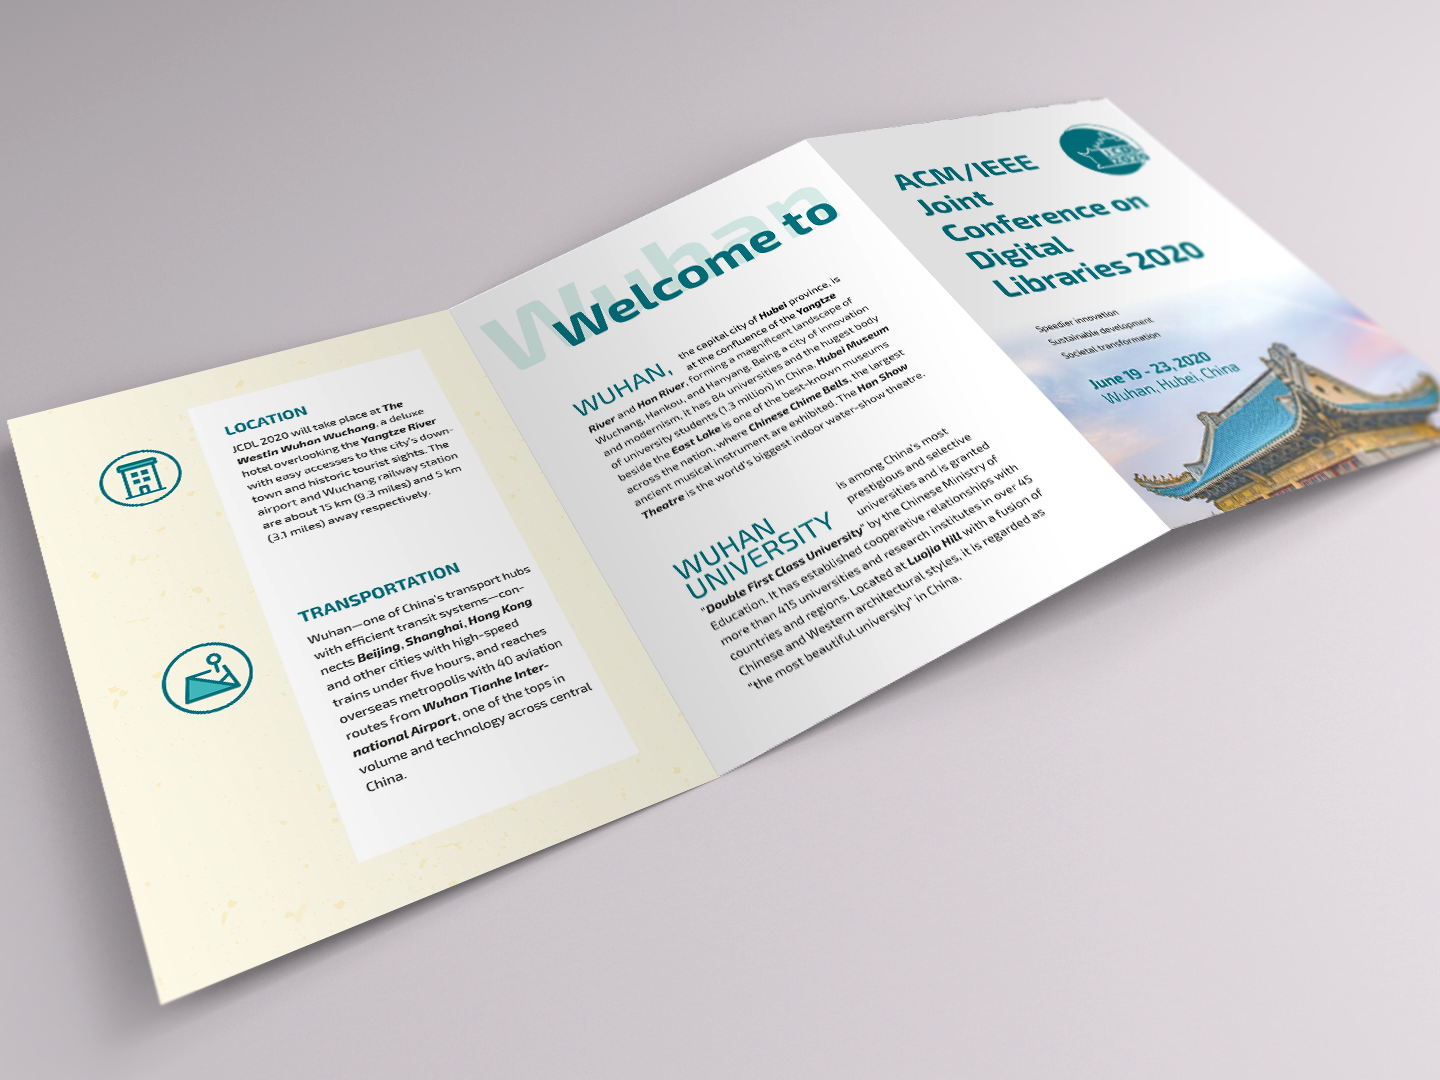 Conference A5 trifold leaflet (JCDL 2020) by Huiqin Gao on